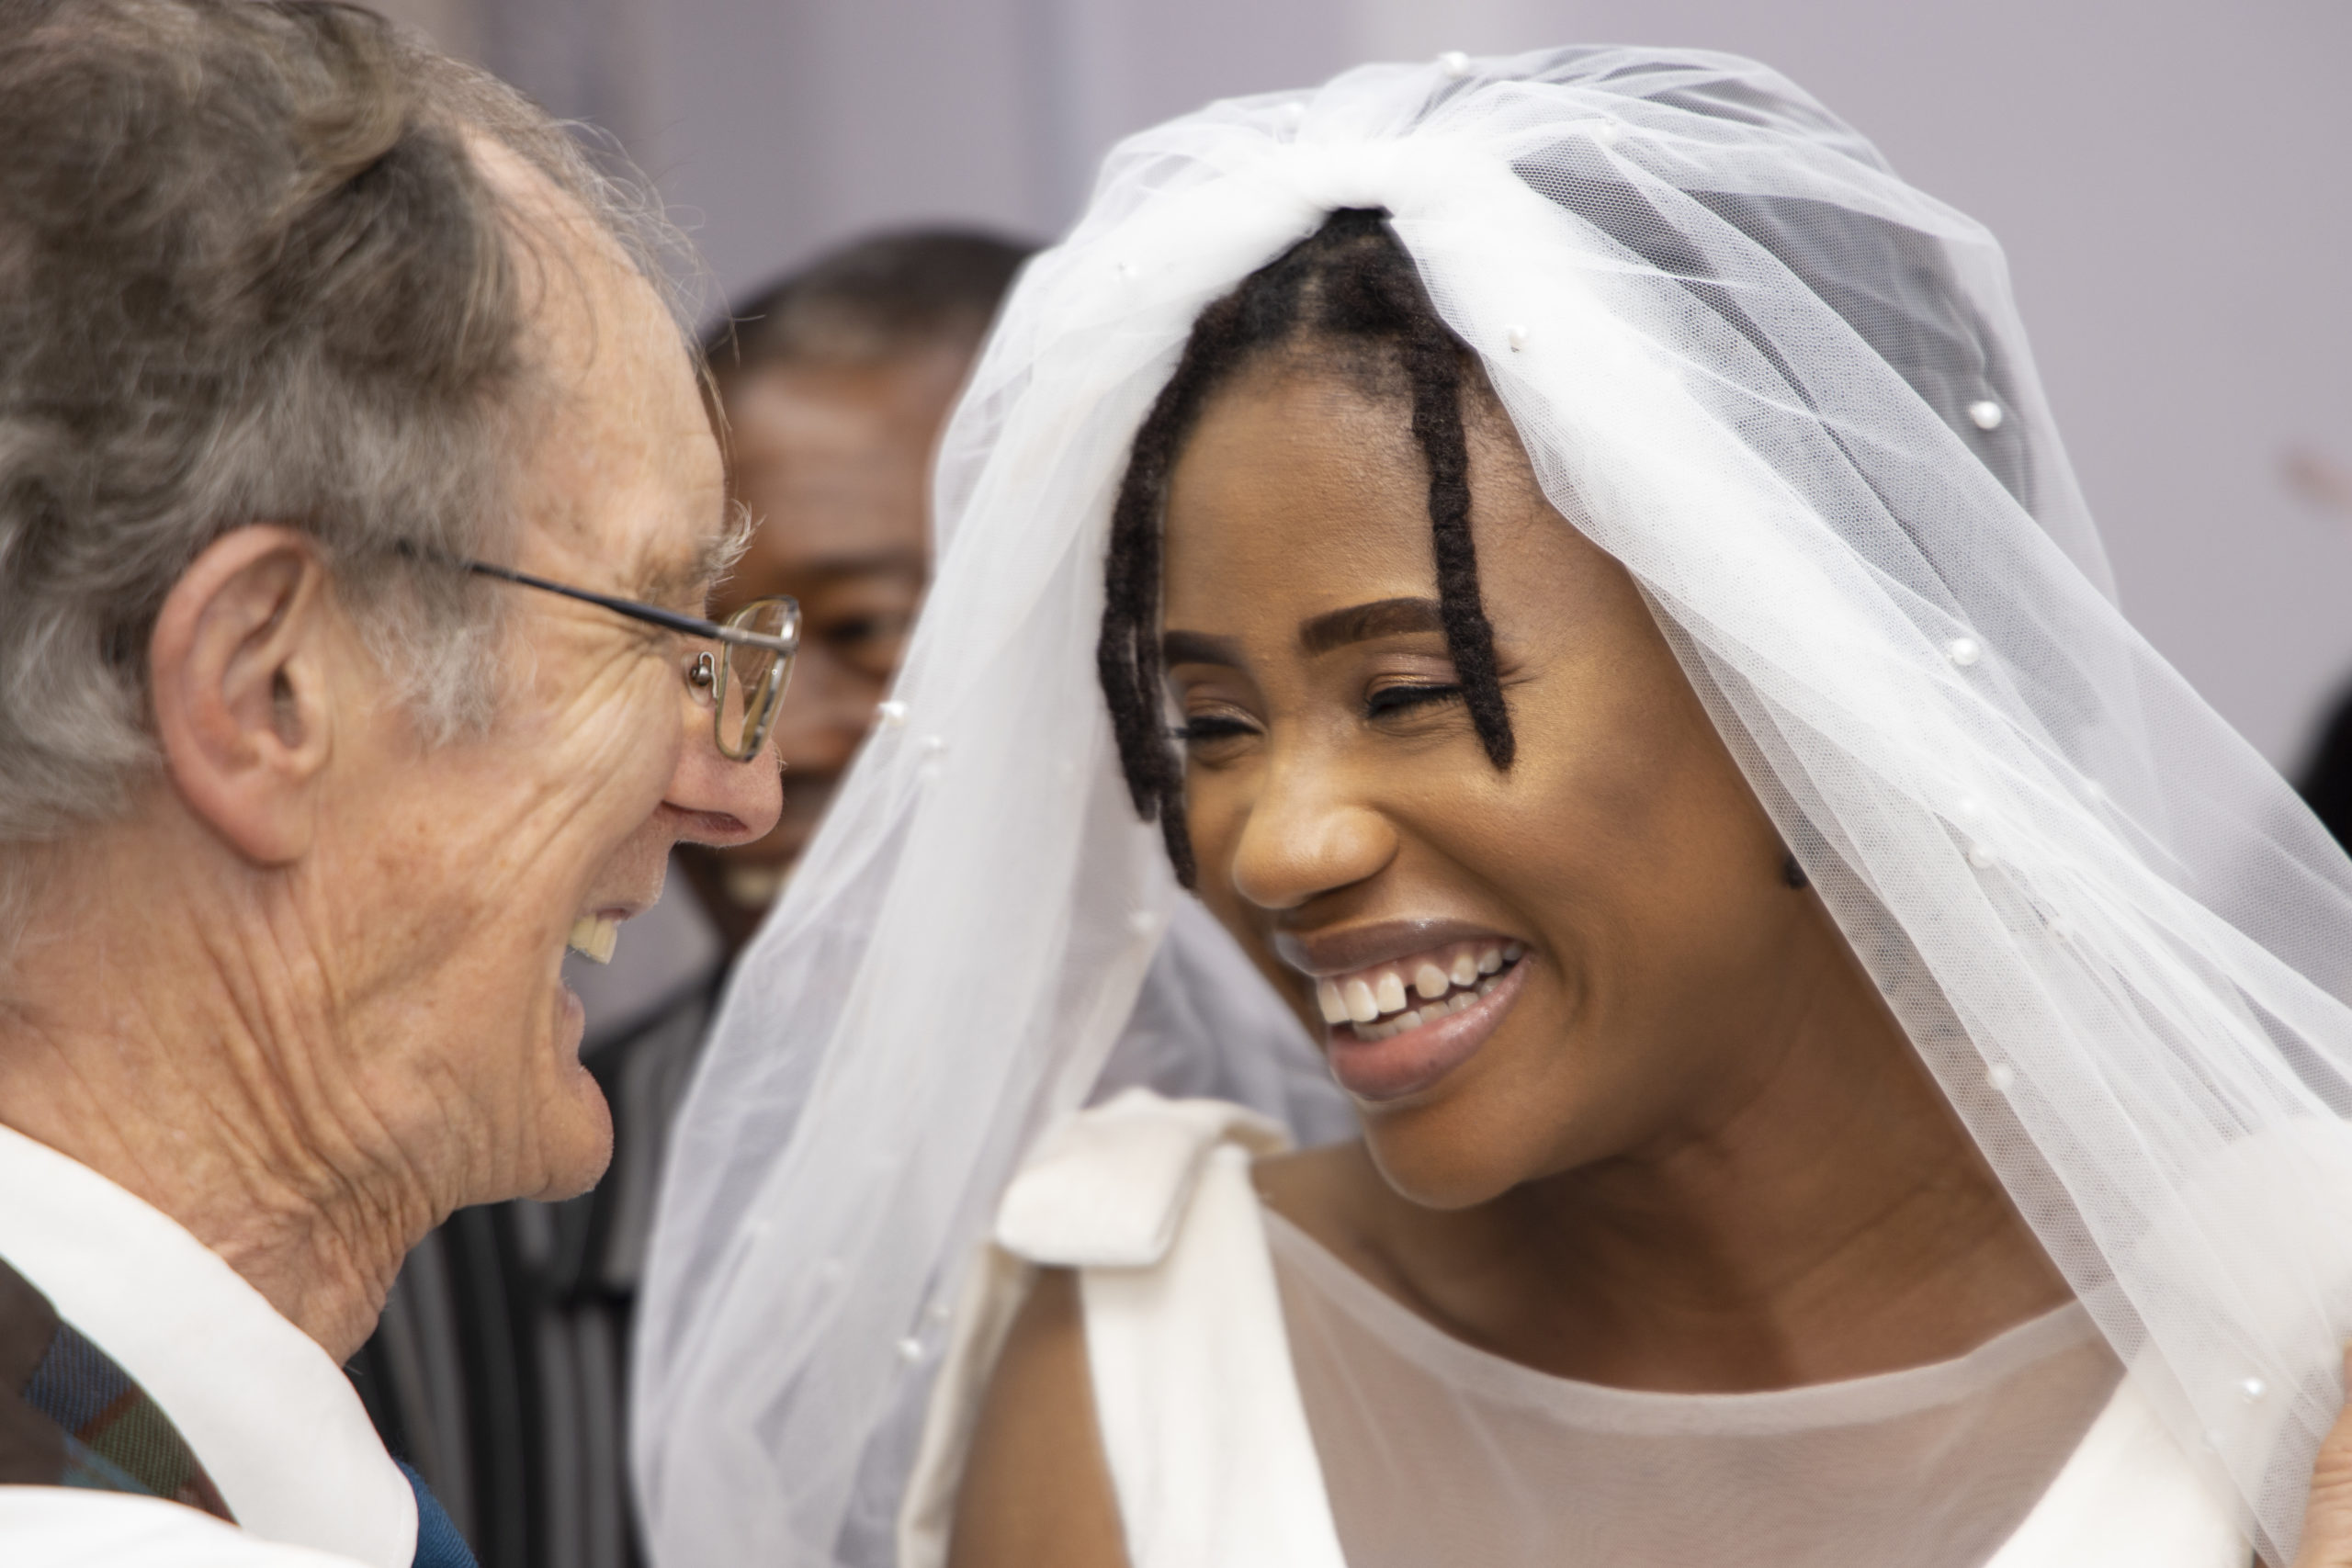 Regina Conteh shares the joy of her wedding day in Sierra Leone last month with Keith Thomson, the doctor who saved her life